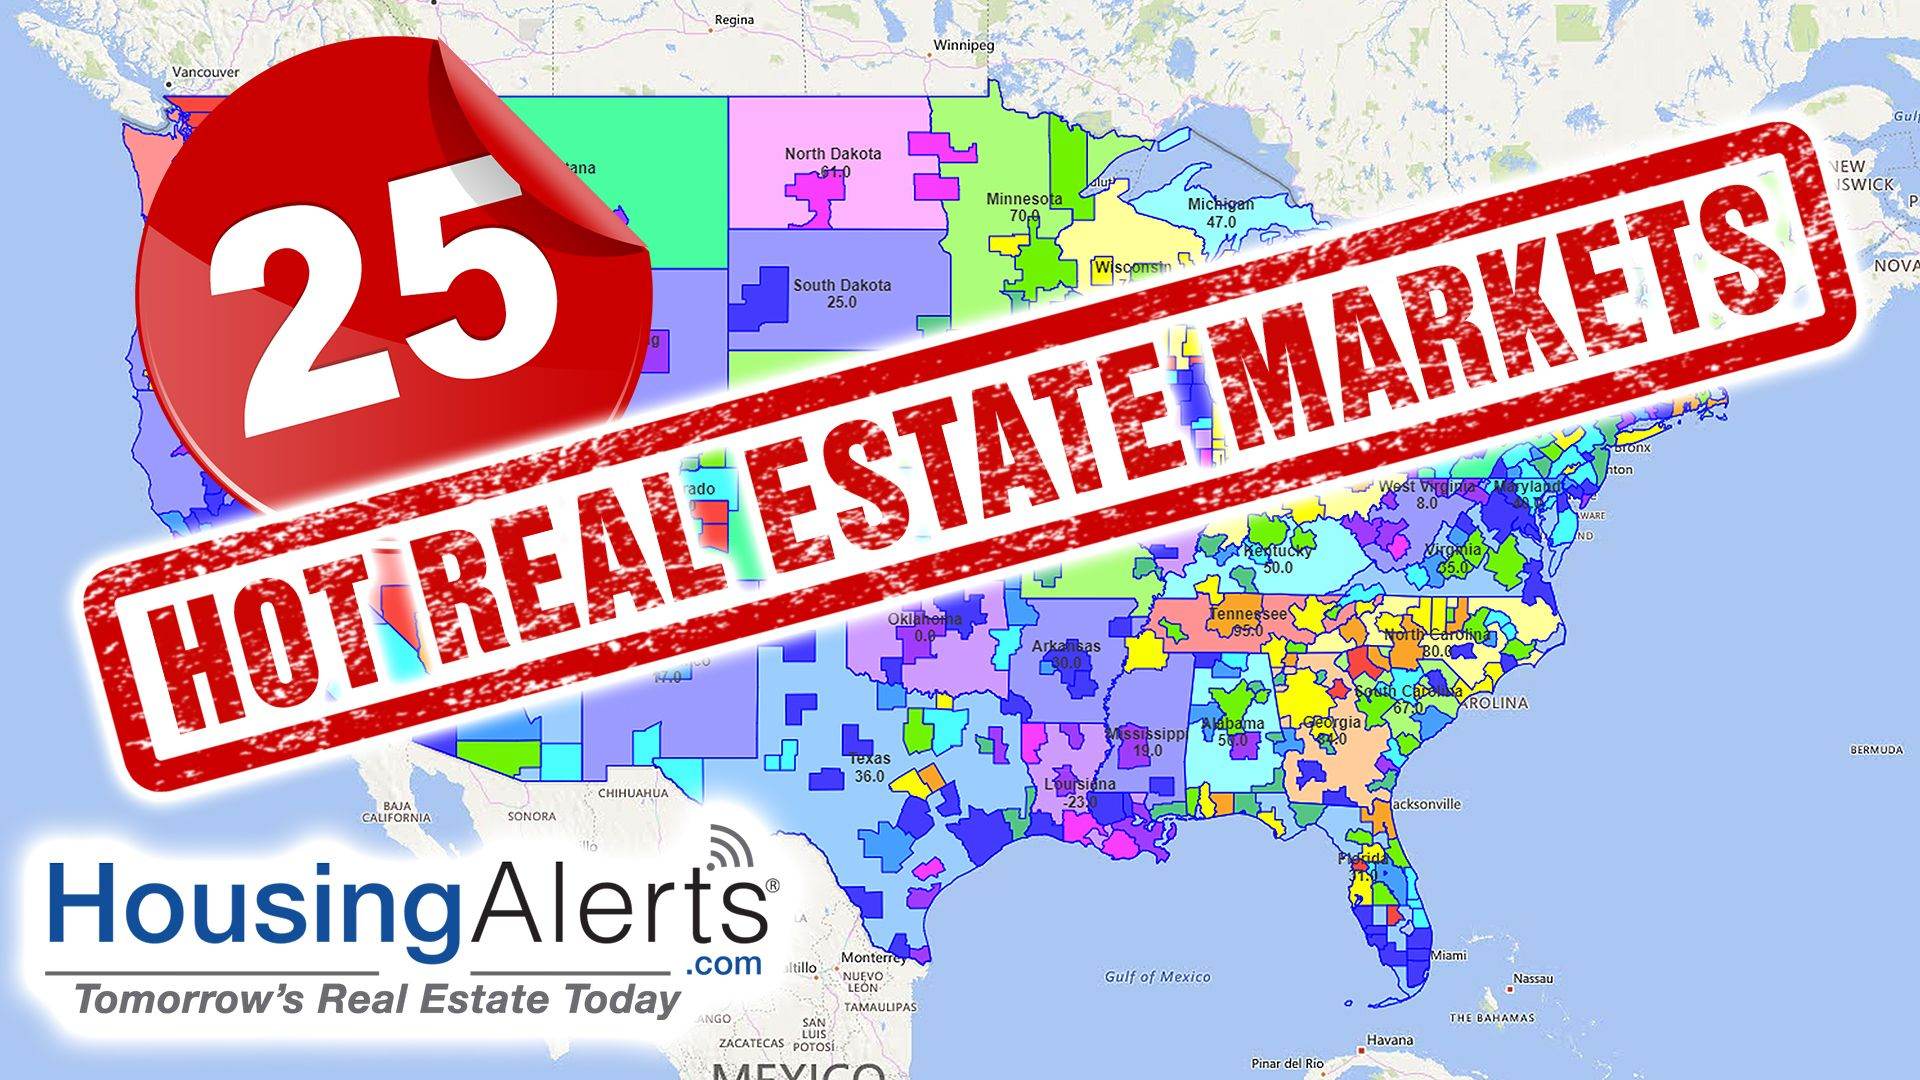 Top 25 Real Estate Markets New 2019 Real Estate Marketing